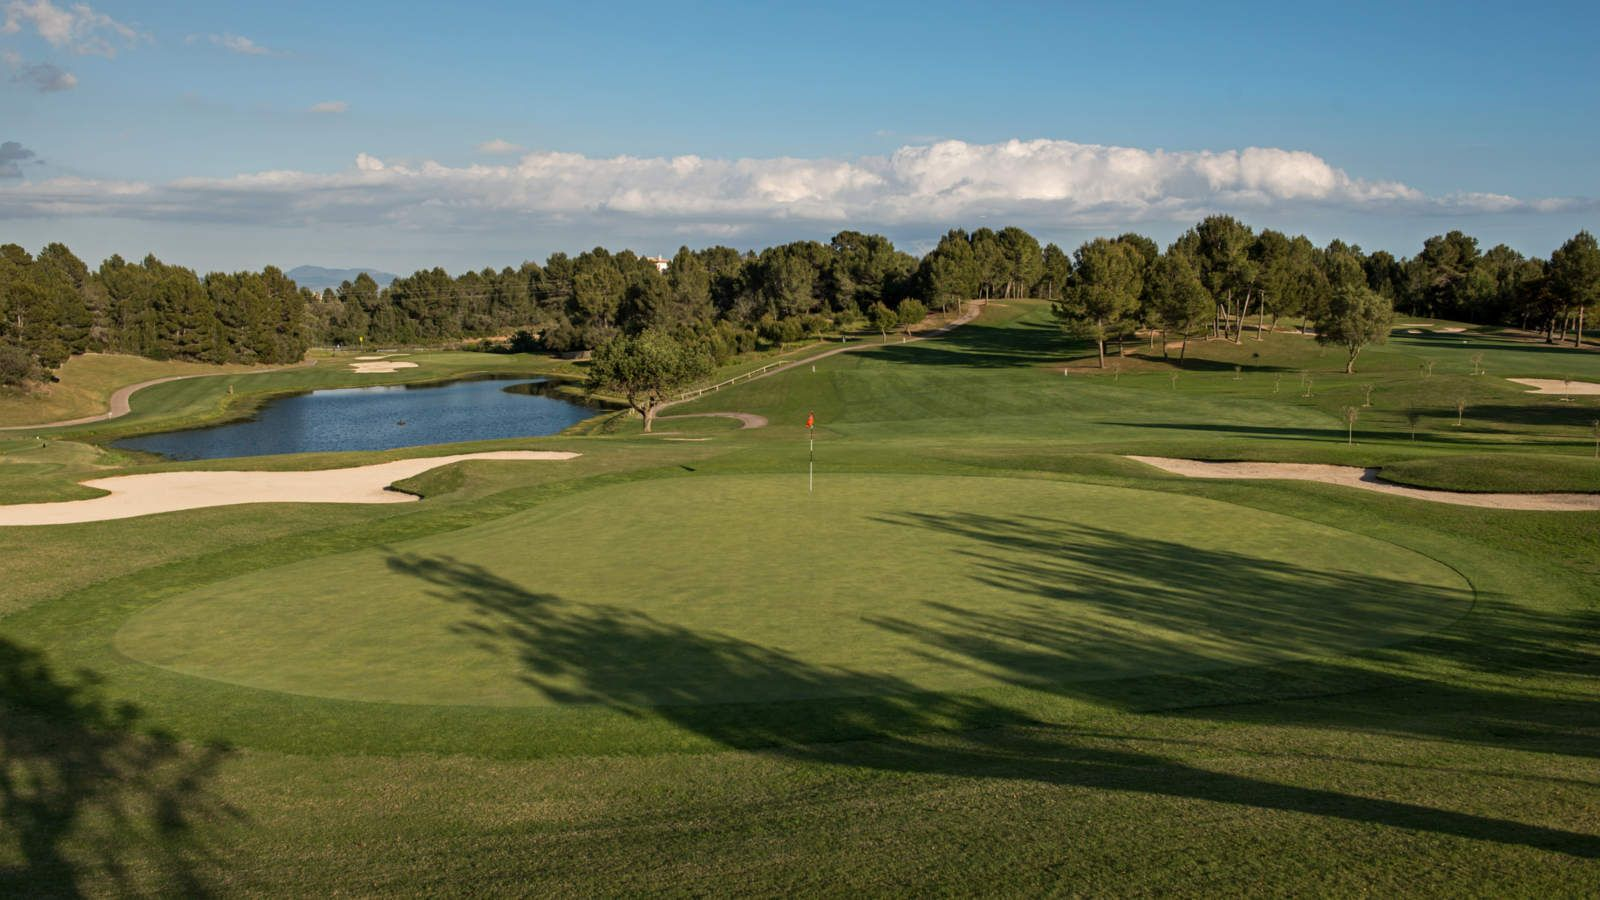 Son Quint golf course at The St. Regis Mardavall Mallorca